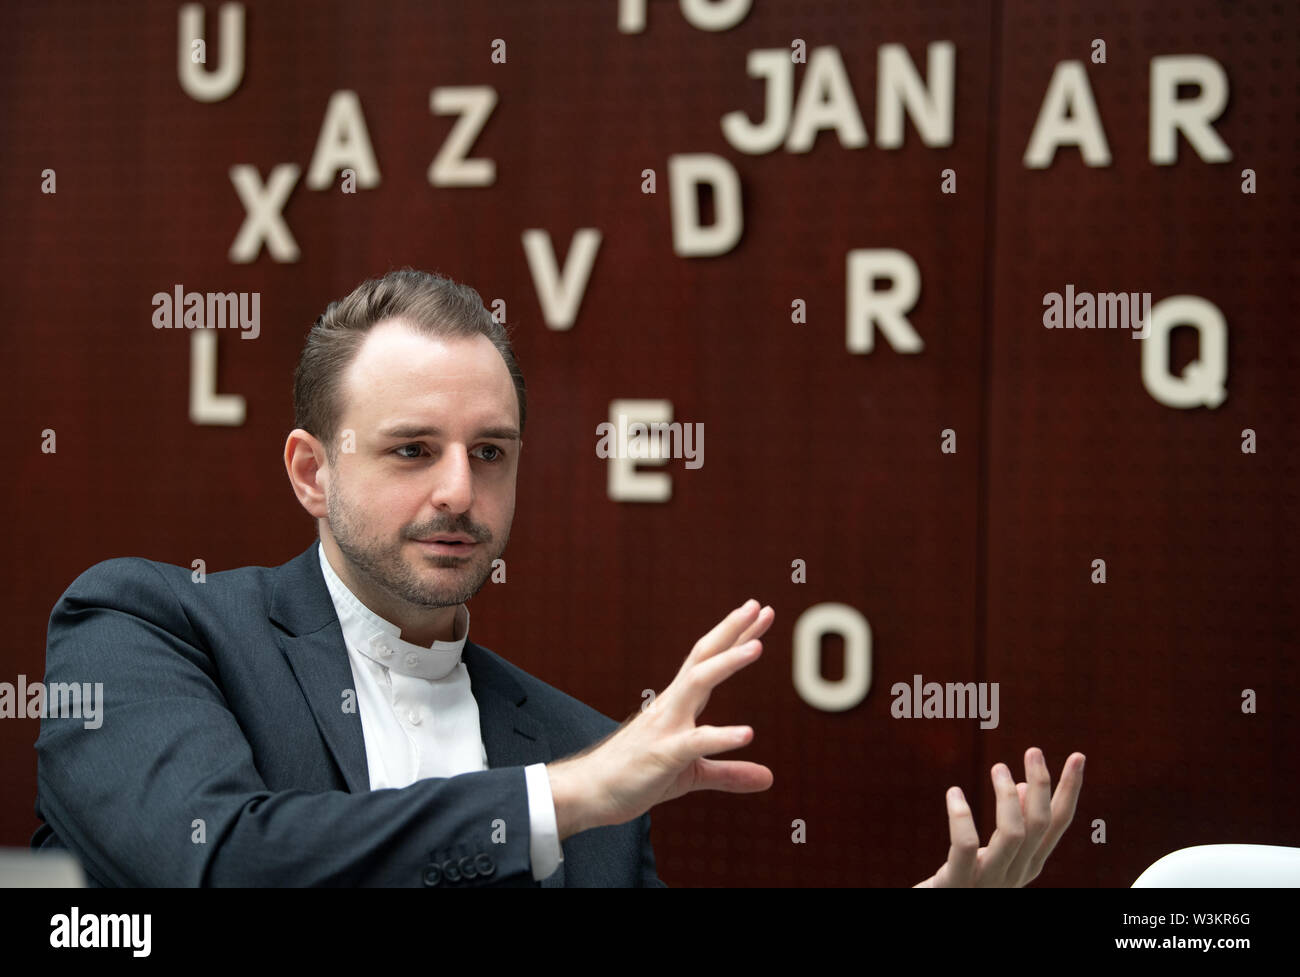 Berlin, Germany. 11th July, 2019. Thomas Christian Bächle, media scientist and one of the two directors of the research program 'The Development of the Digital Society' at the Humboldt Institute for Internet and Society (HIIG). Credit: Soeren Stache/dpa/Alamy Live News - Stock Image